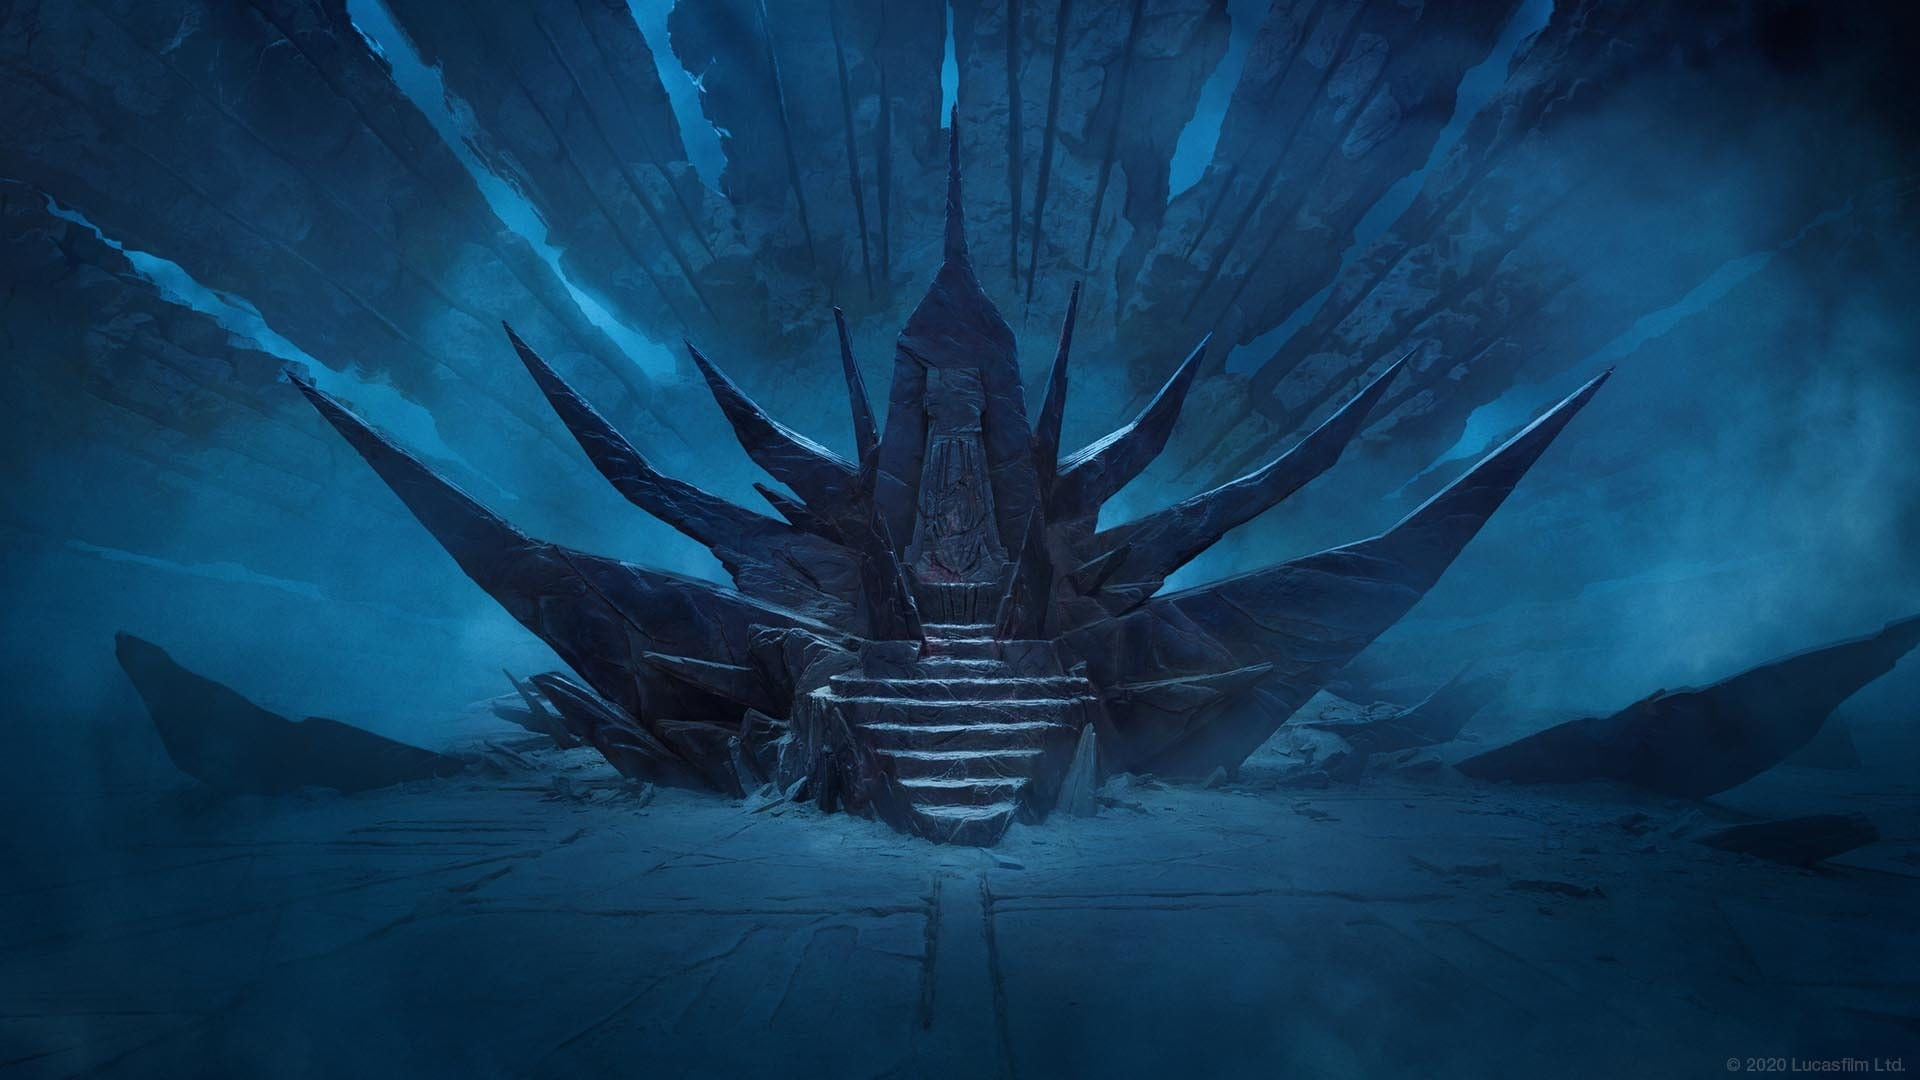 THE EMPEROR'S THRONE ON EXEGOL